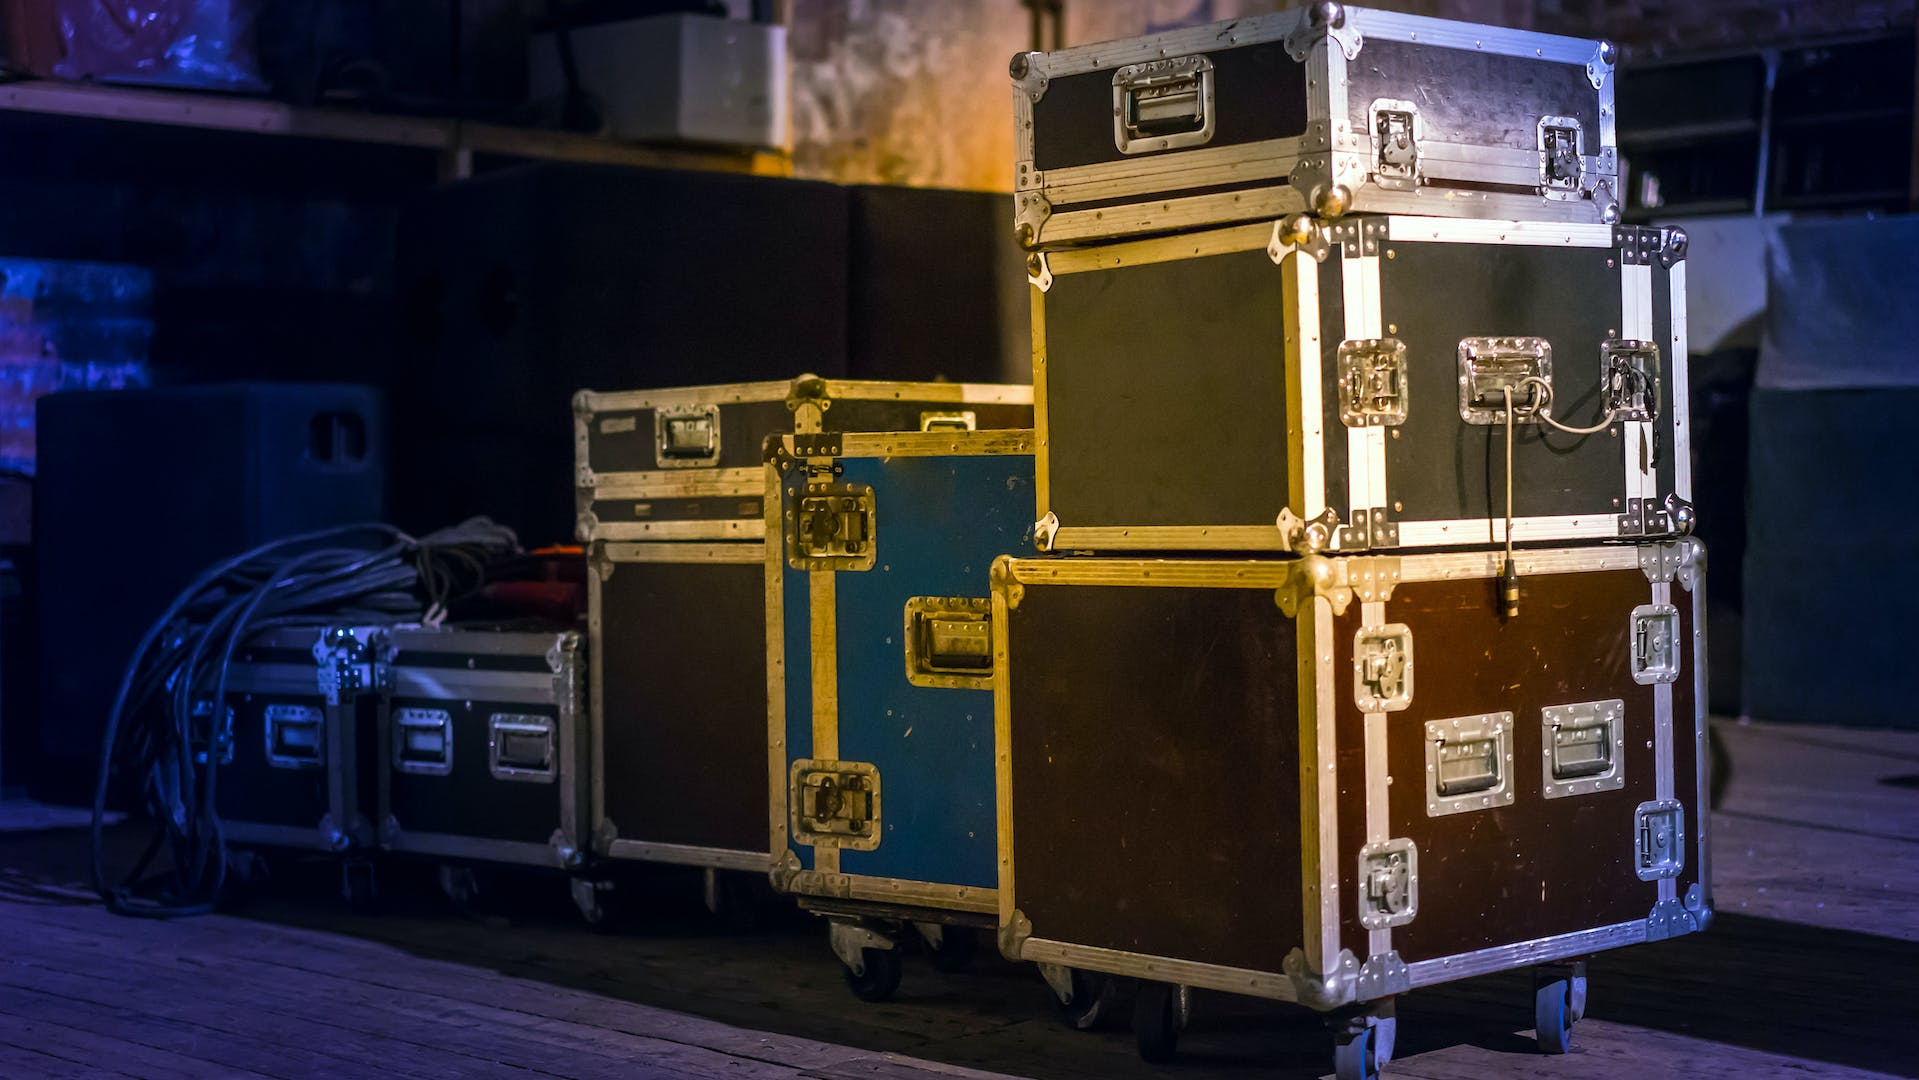 Don't risk losing or damaging the musical instruments and equipment that are vital for the orchestra's performance, as often happens with commercial airlines.